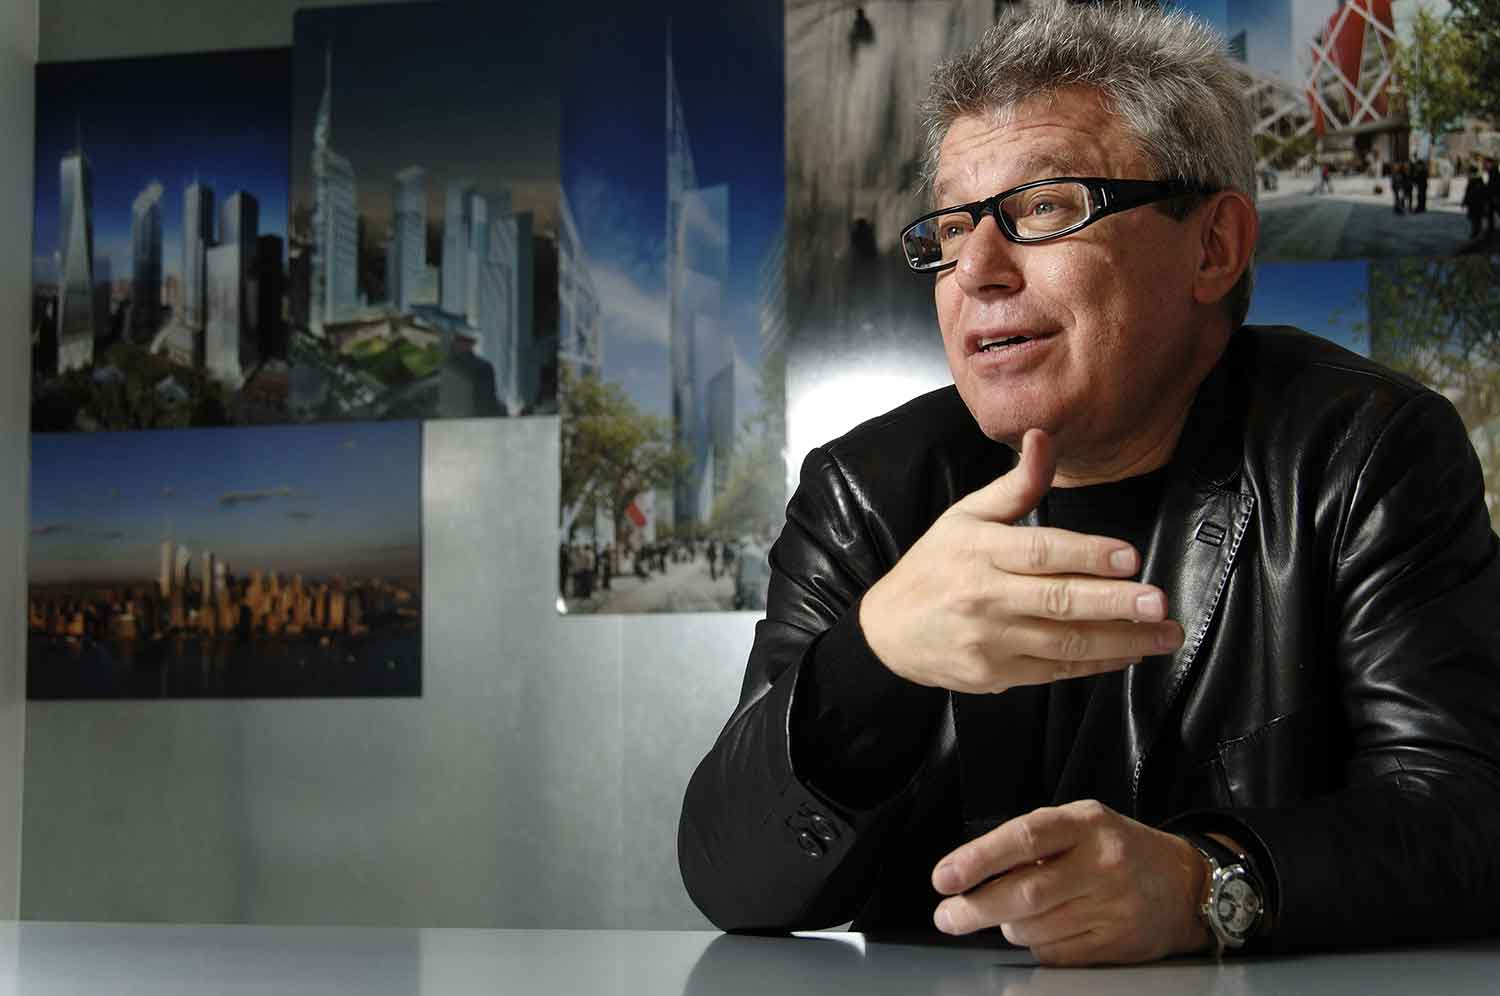 Where Architects Live - Daniel Libeskind | Yellowtrace